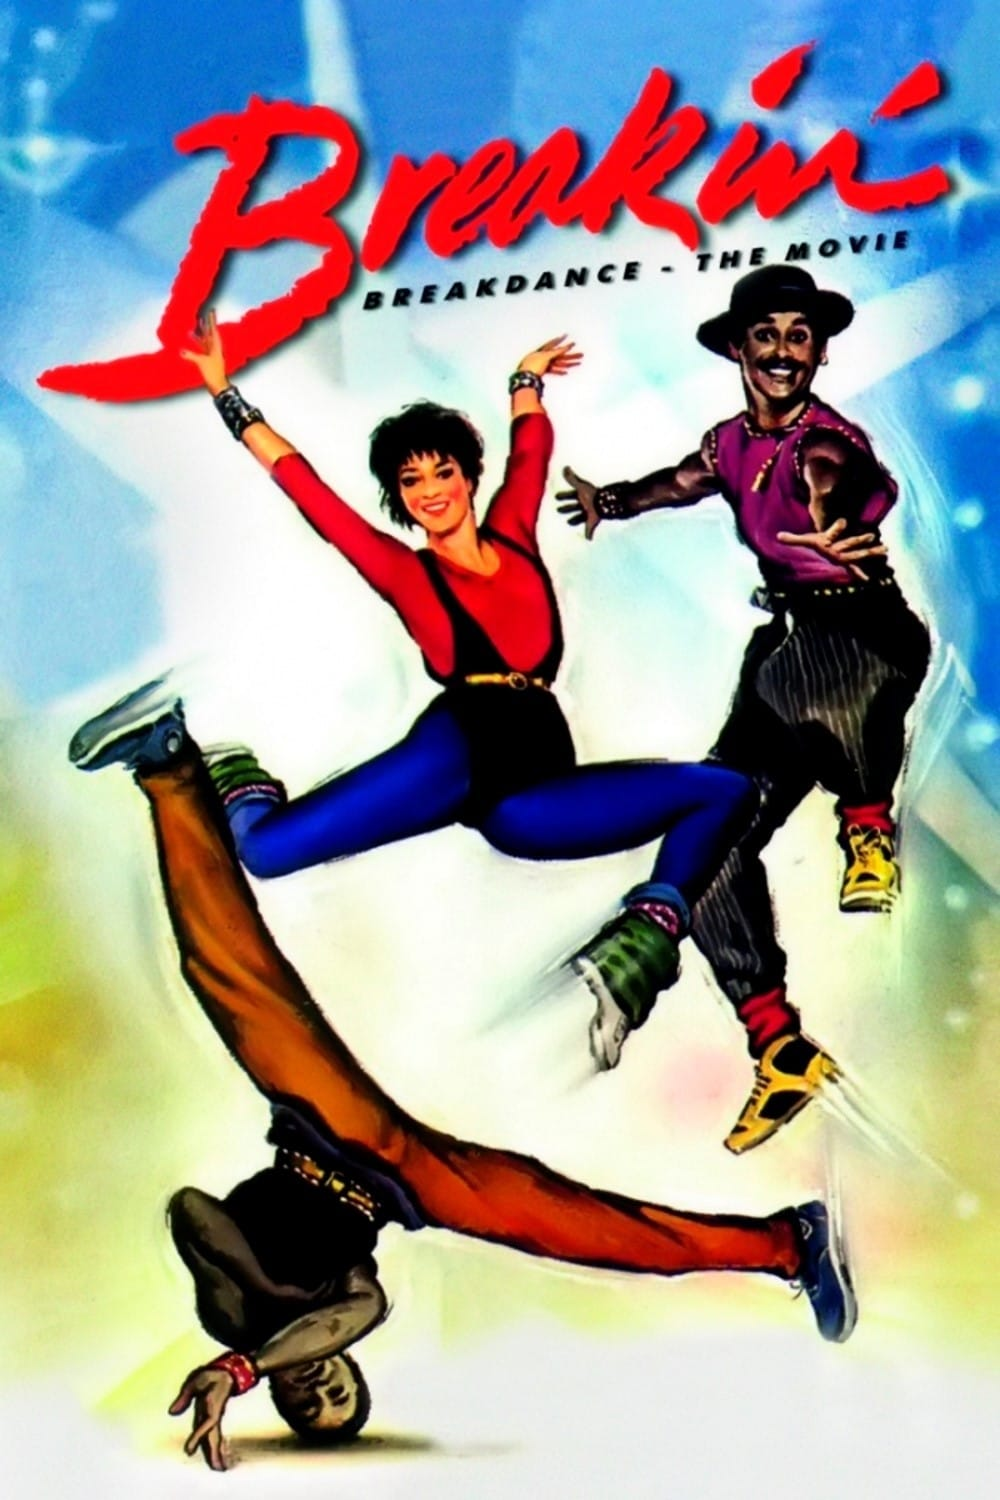 Breakin (1984) 192Kbps 25Fps MP3 2Ch TR VHS Audio SHS